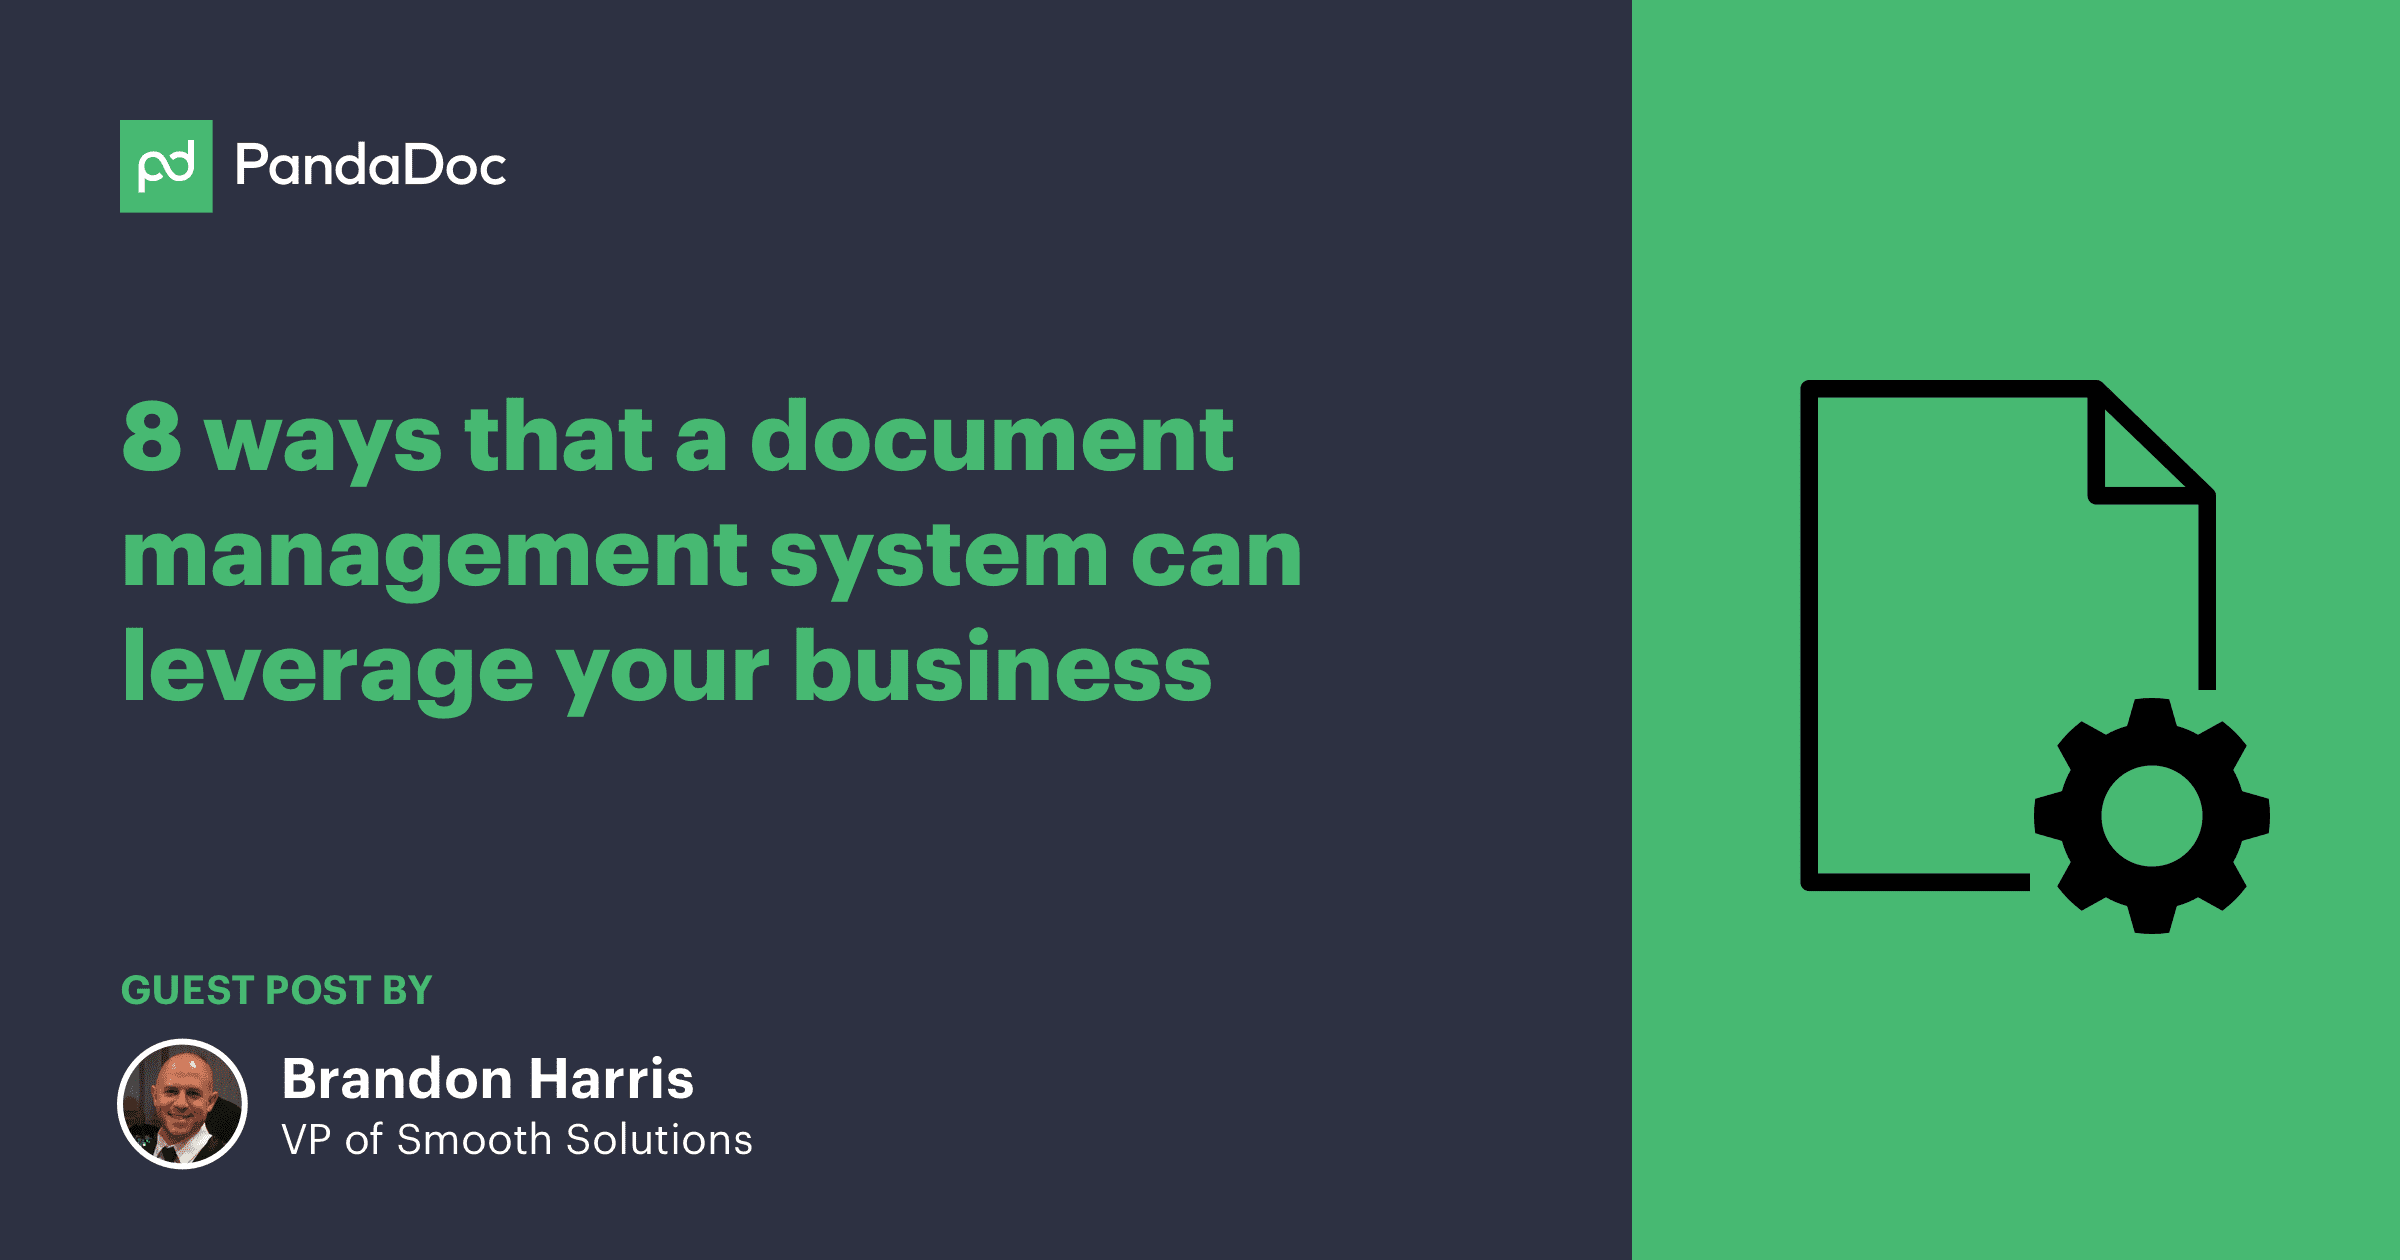 8 ways that a document management system can leverage your business